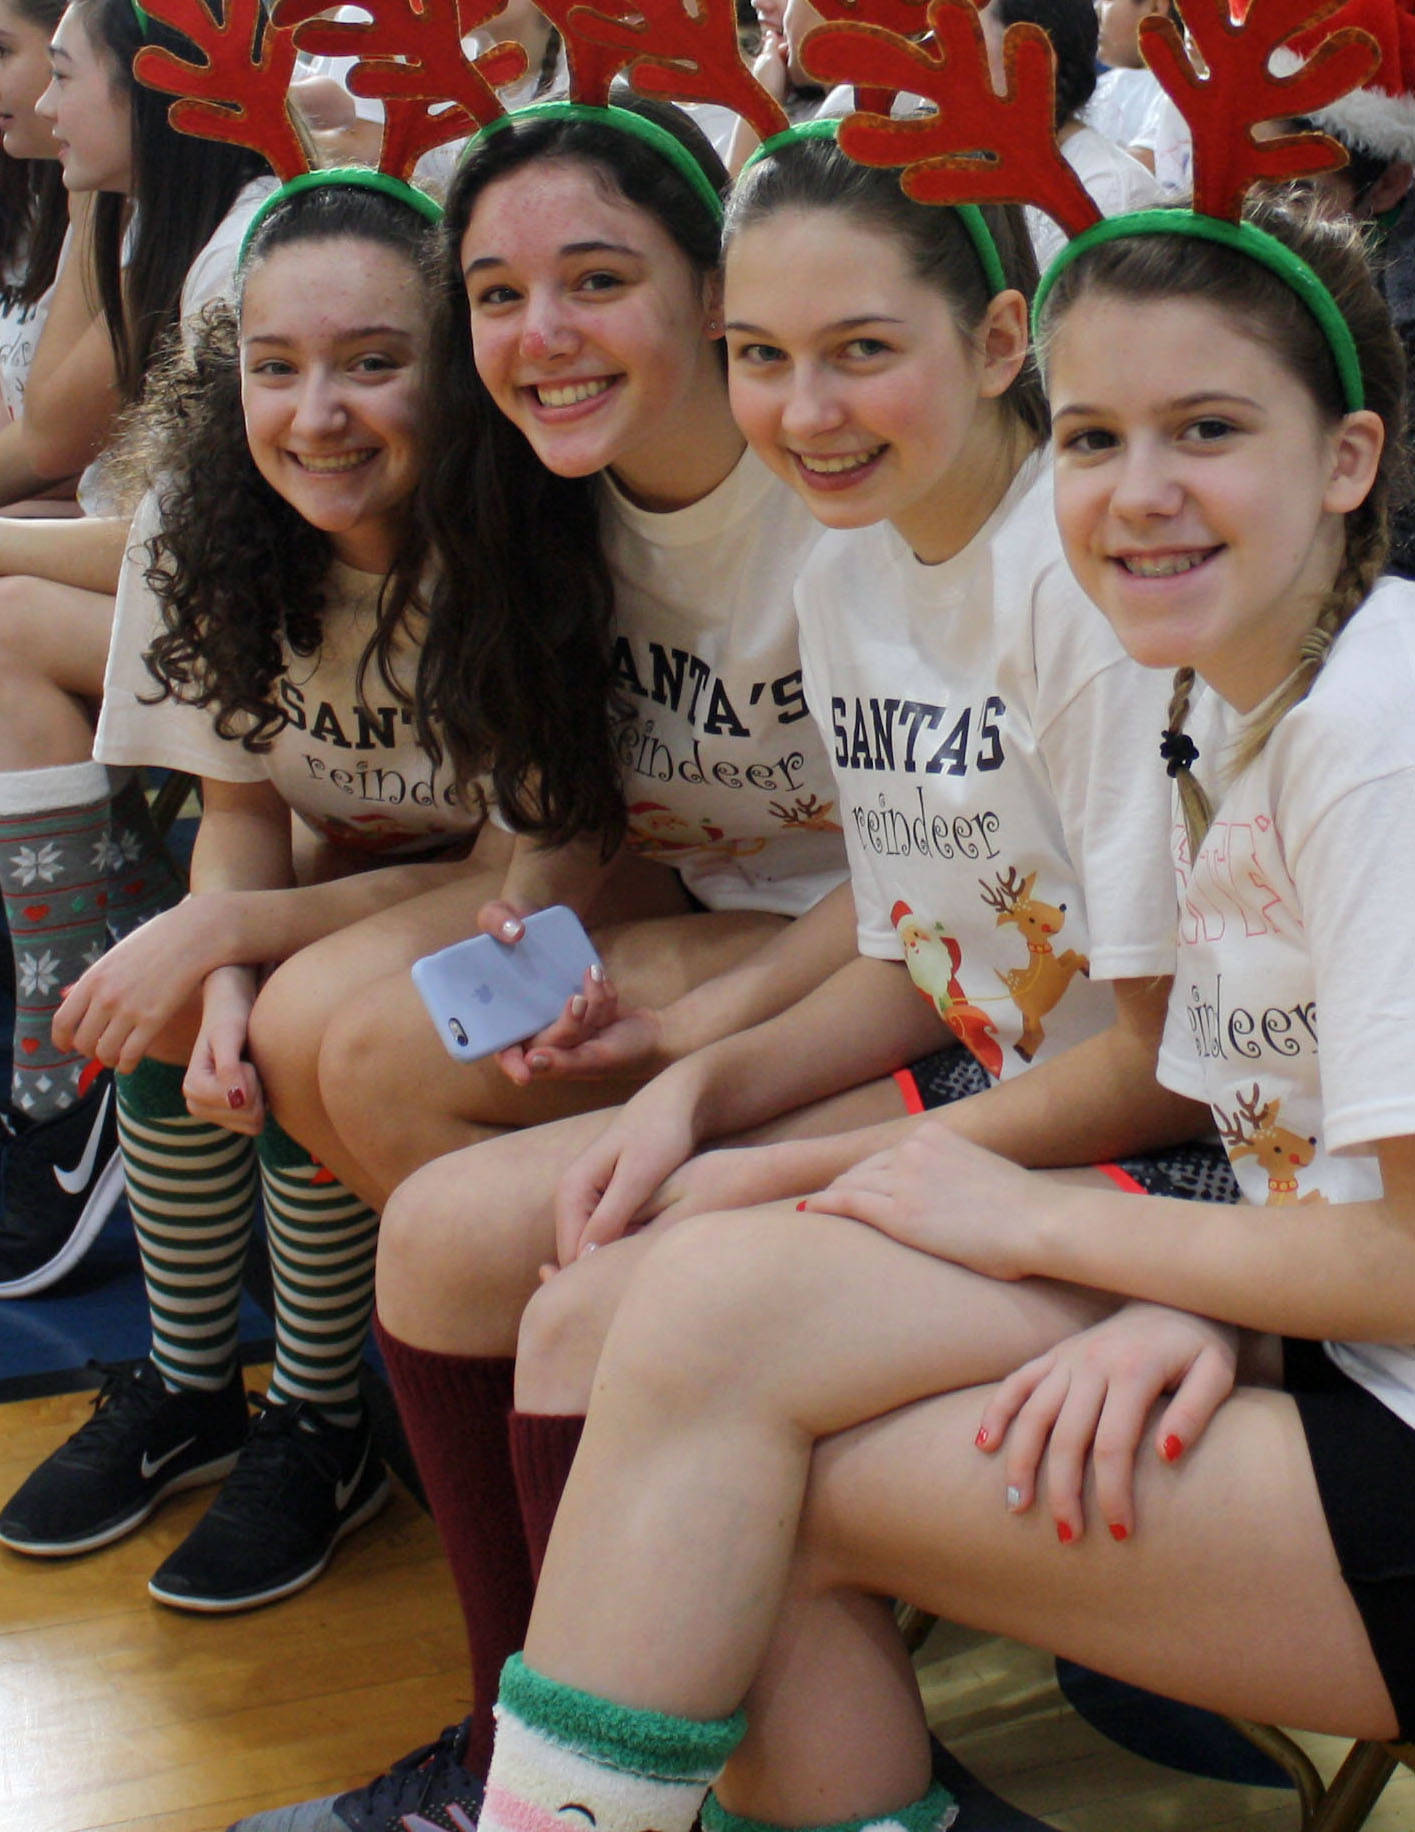 ed28d0b9d03fb80d0f7a_CMS_Volleyball_Game_Santas_Reindeer_cropped.jpg